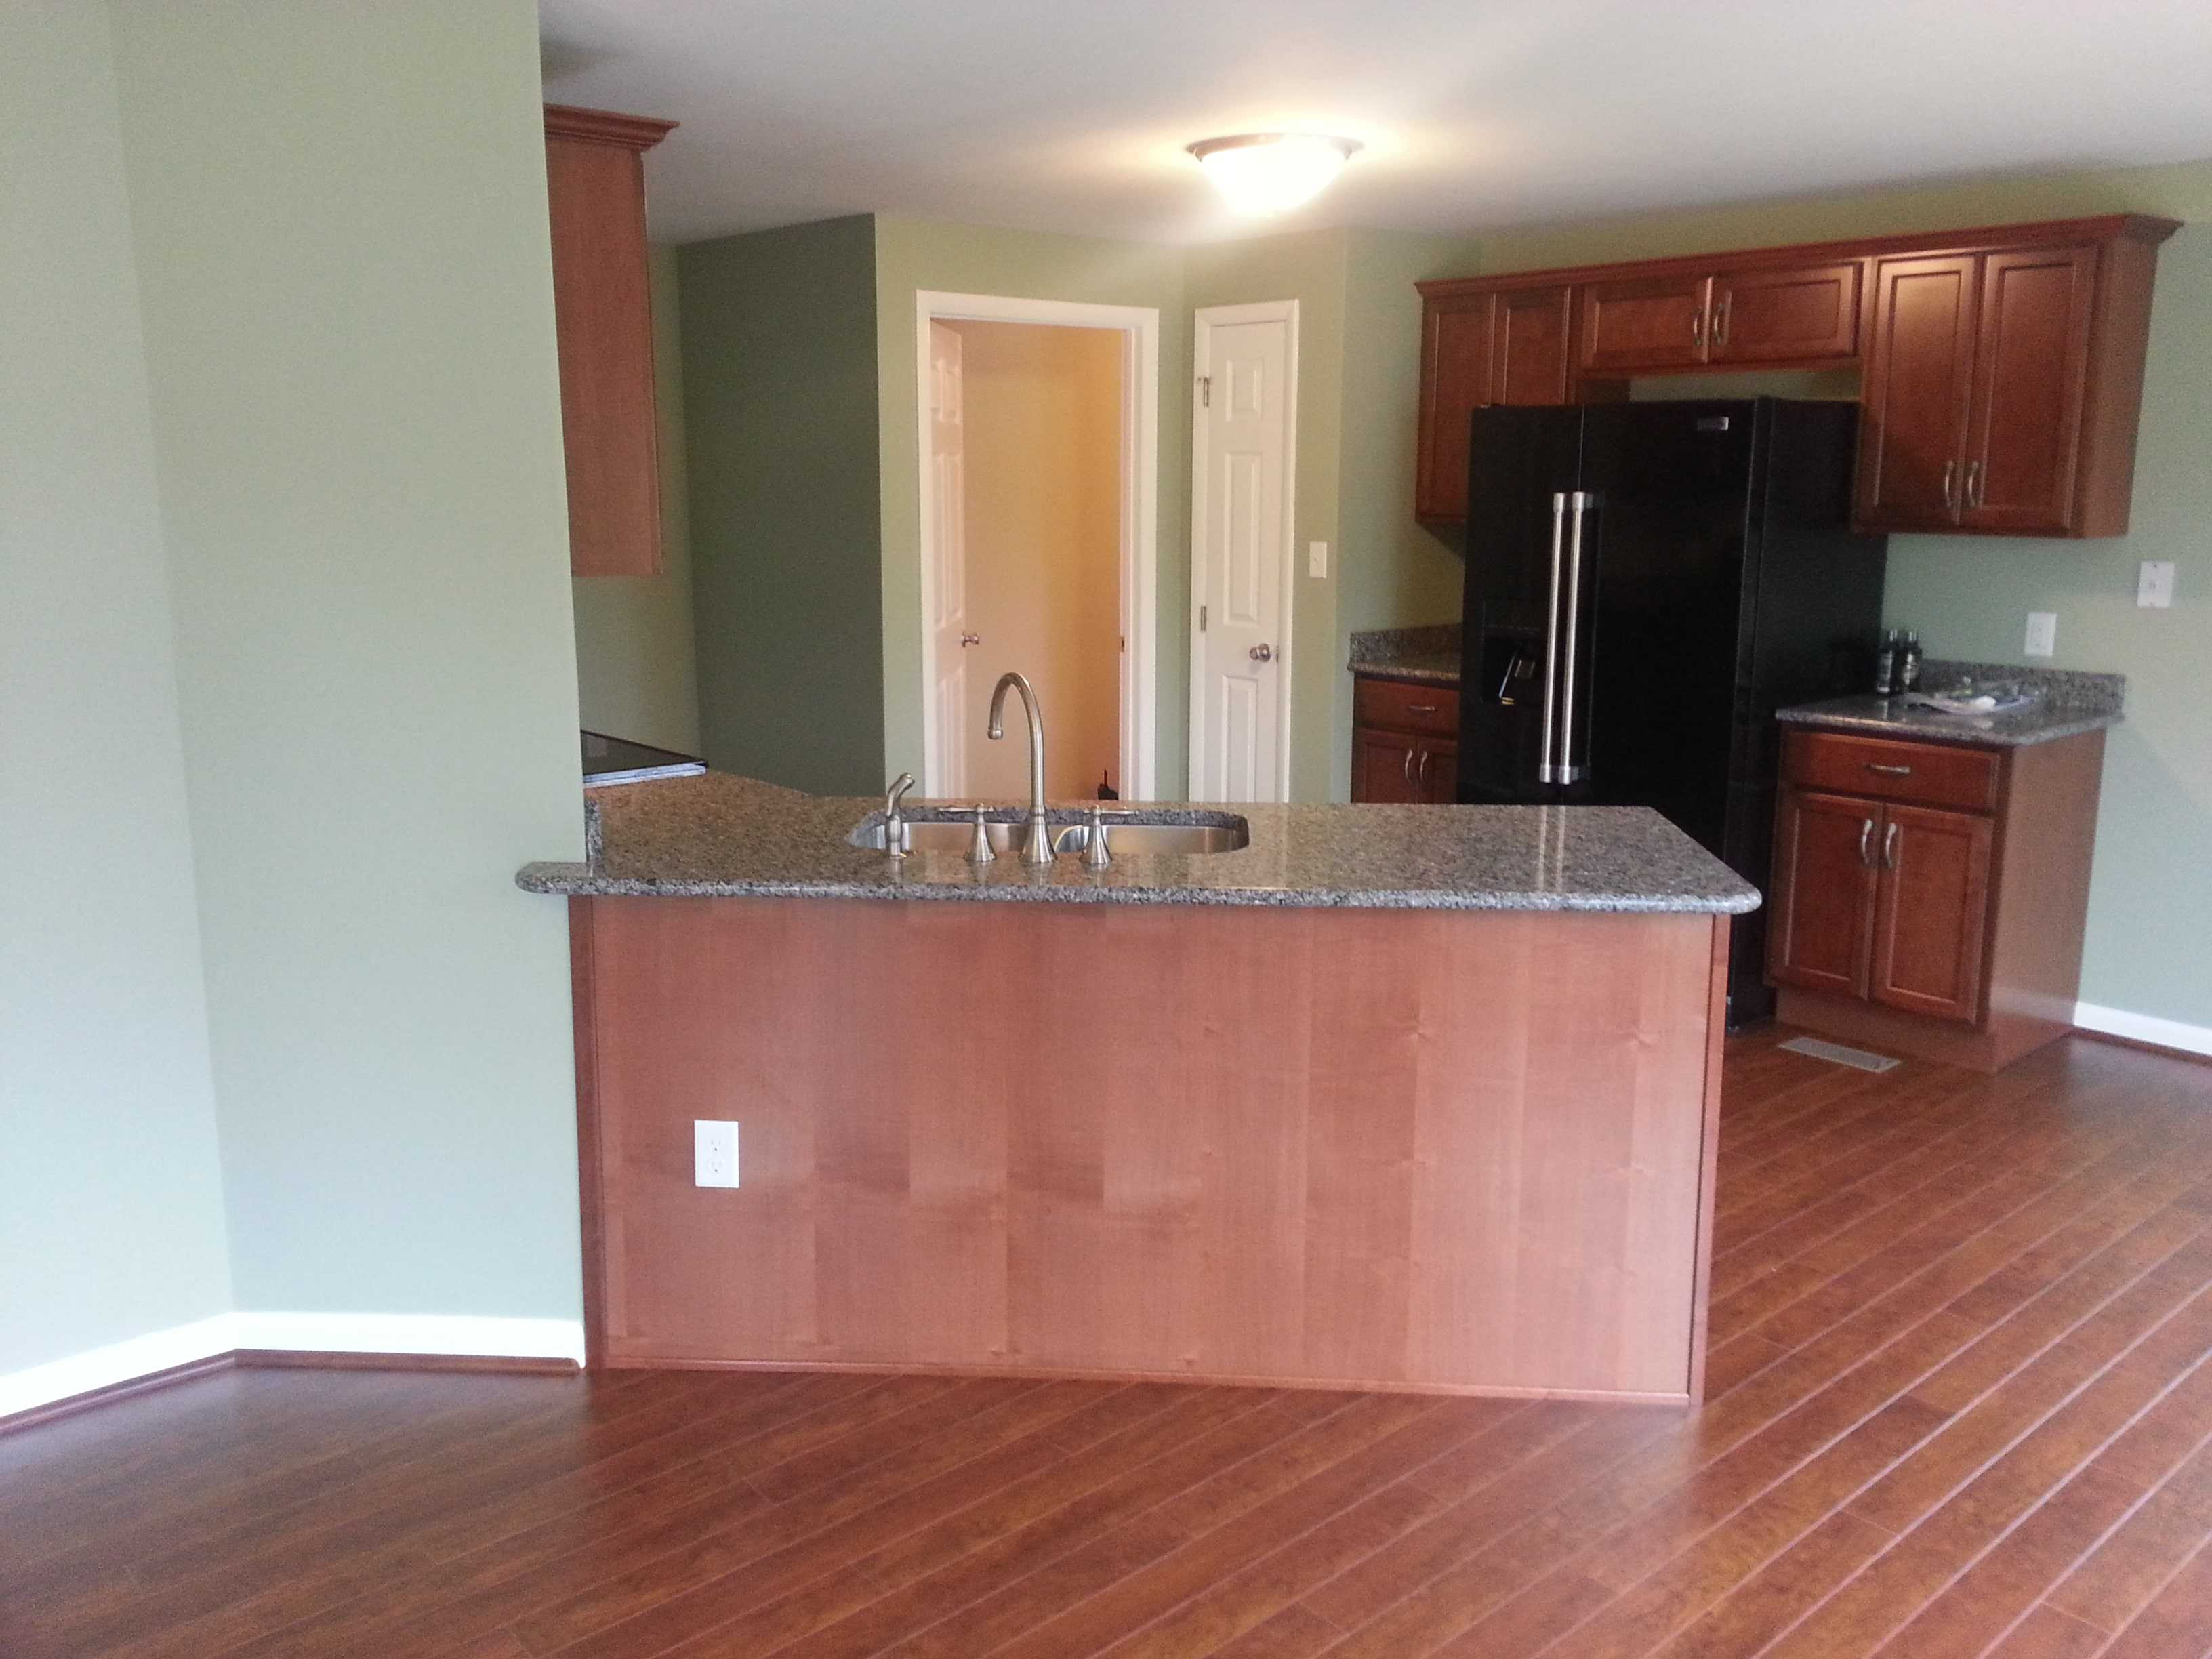 Home Remodeling Contractor In Spring Mills Wv